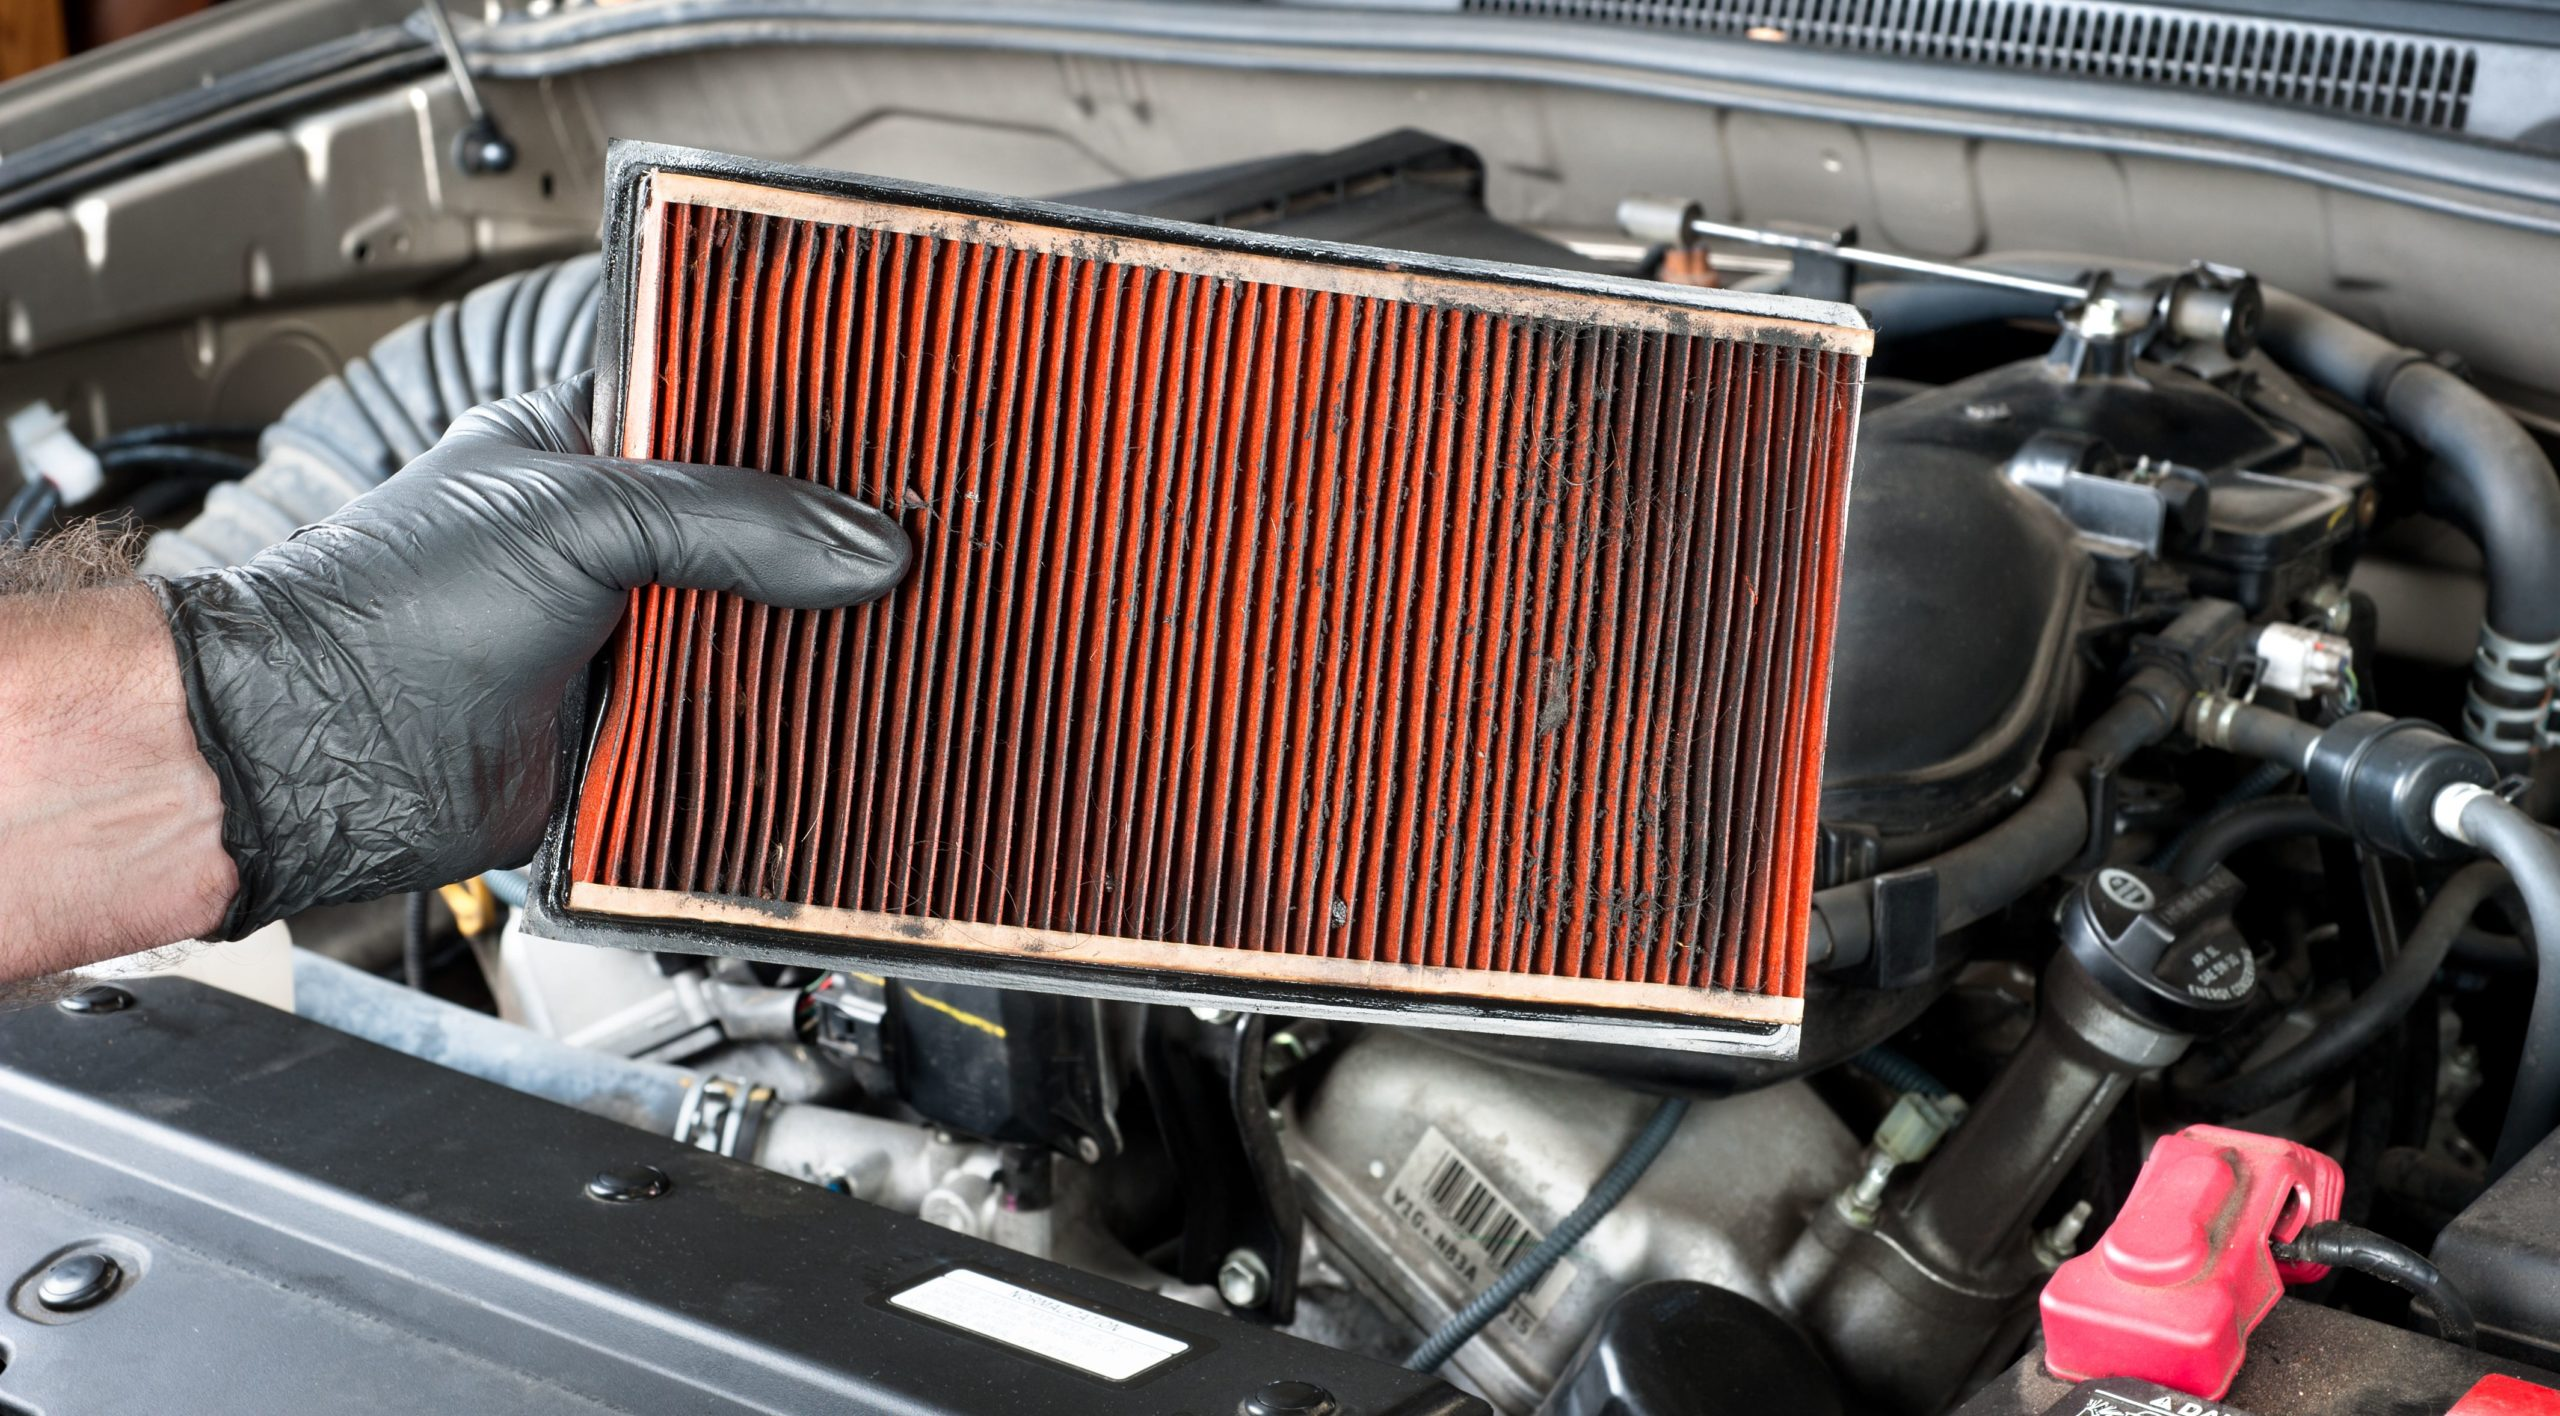 Change your own air filters